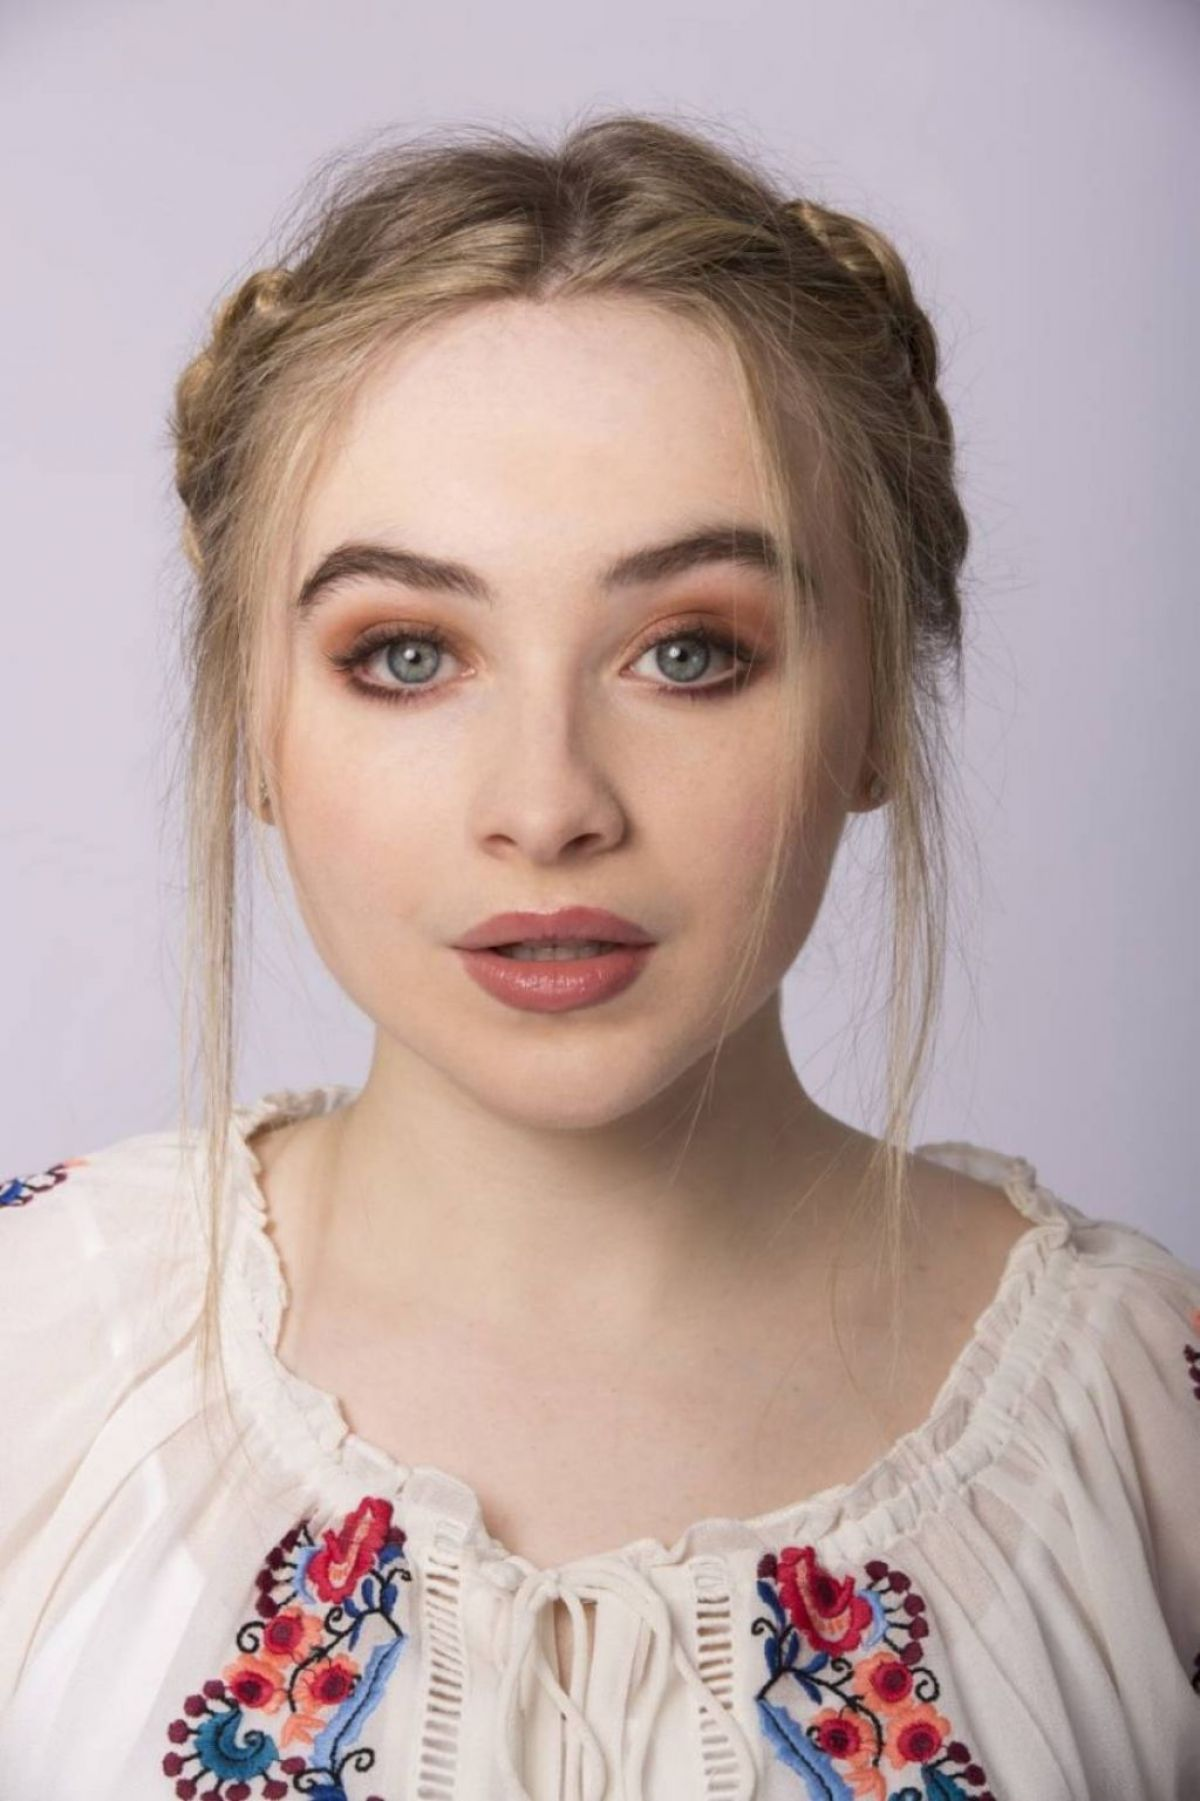 SABRINA CARPENTER on the Set of a Photoshoot, September 2016